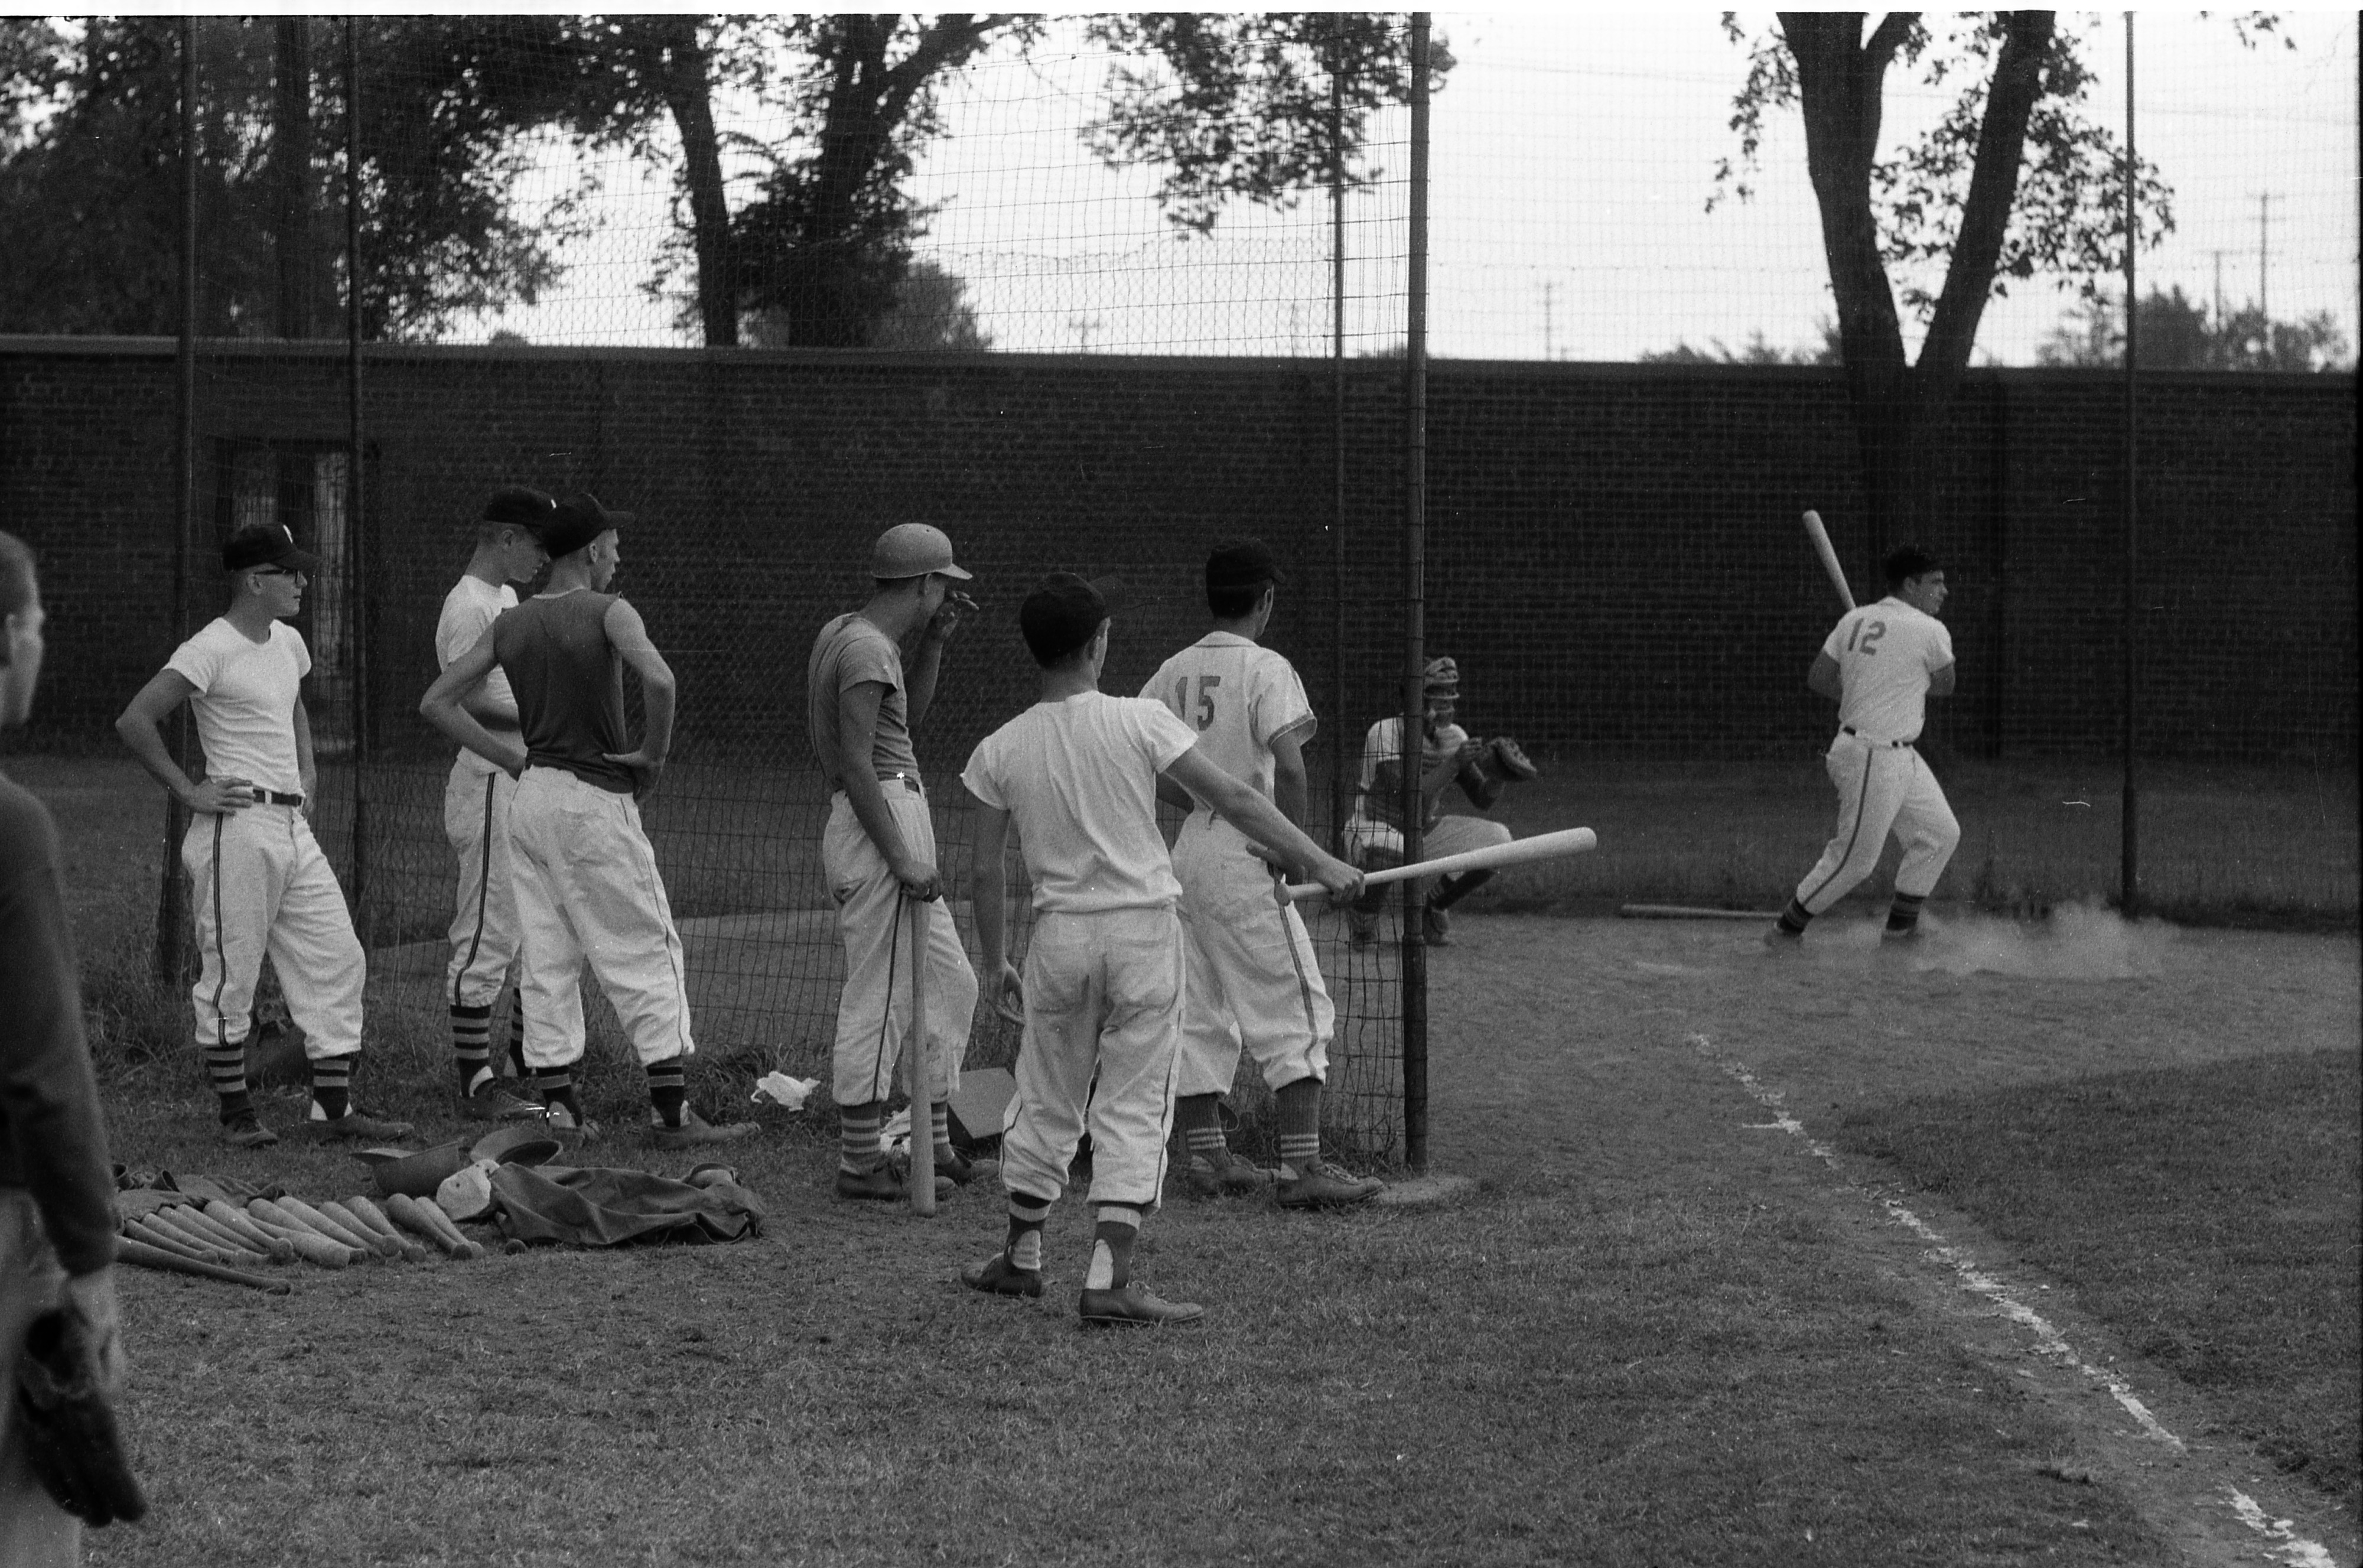 Babe Ruth League World Series Pre-Game Practice At Ferry Field, August 20, 1957 image